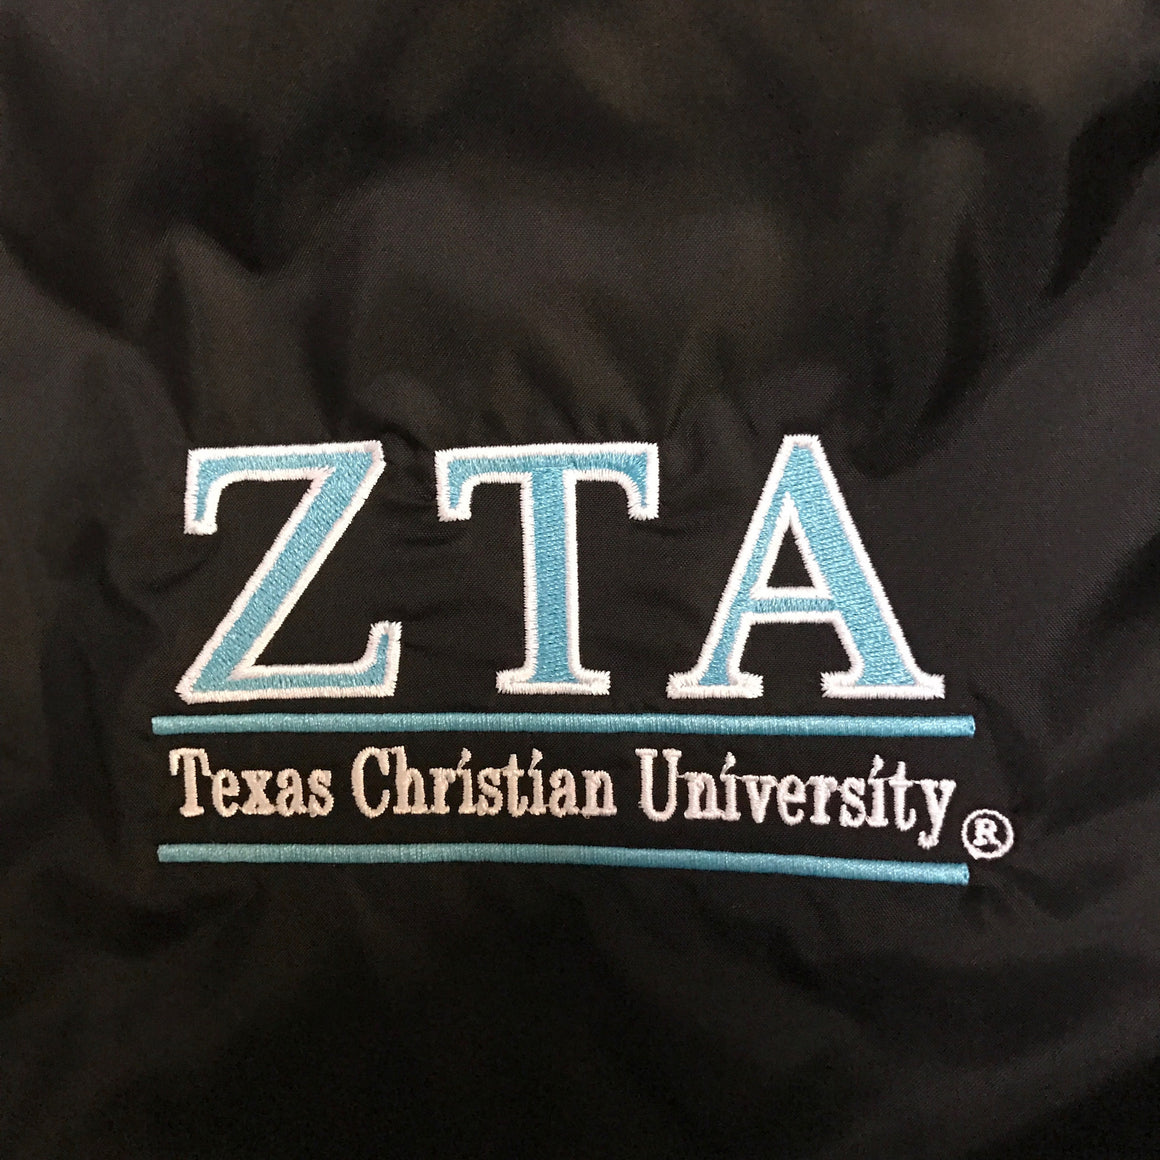 Charles River Rain Jacket - Zeta Tau Alpha - Texas Christian University